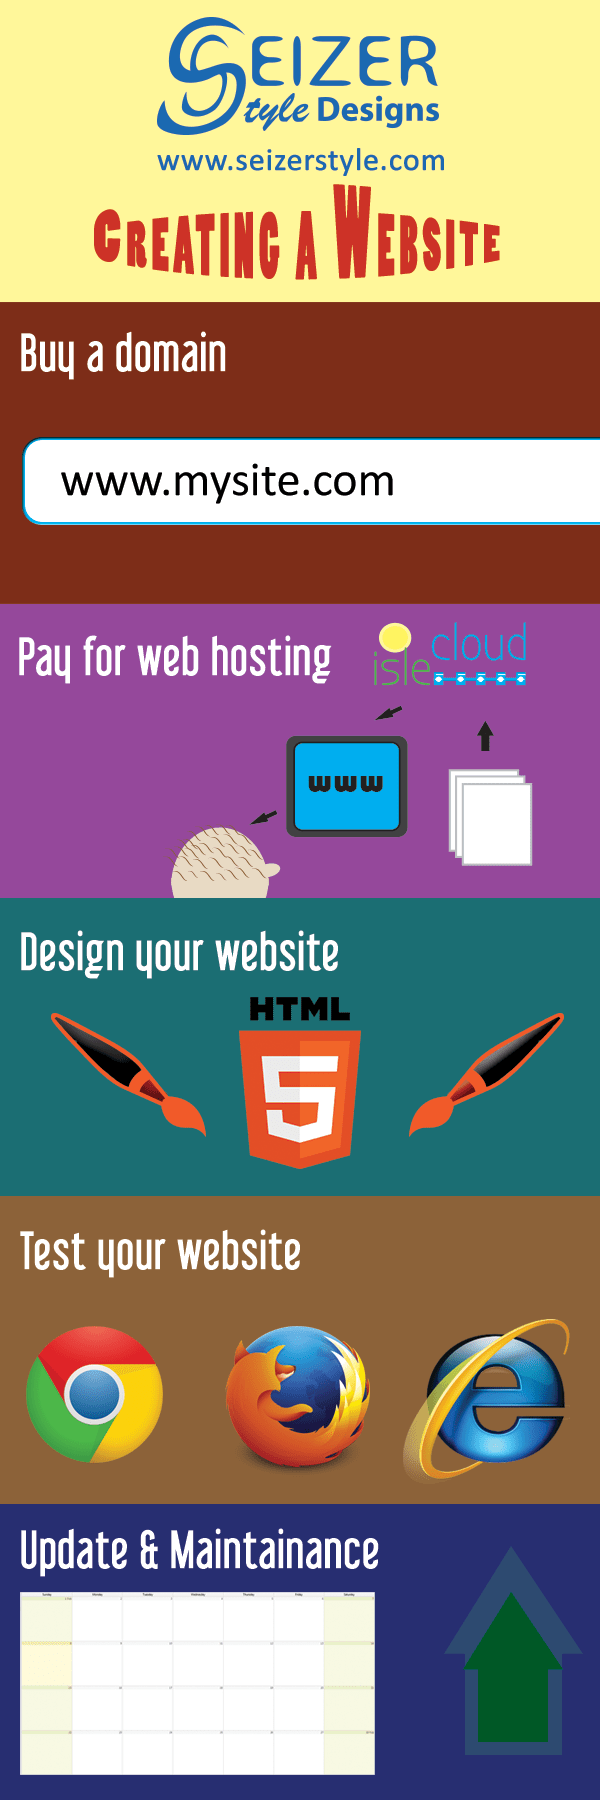 Creating A Website Infographic